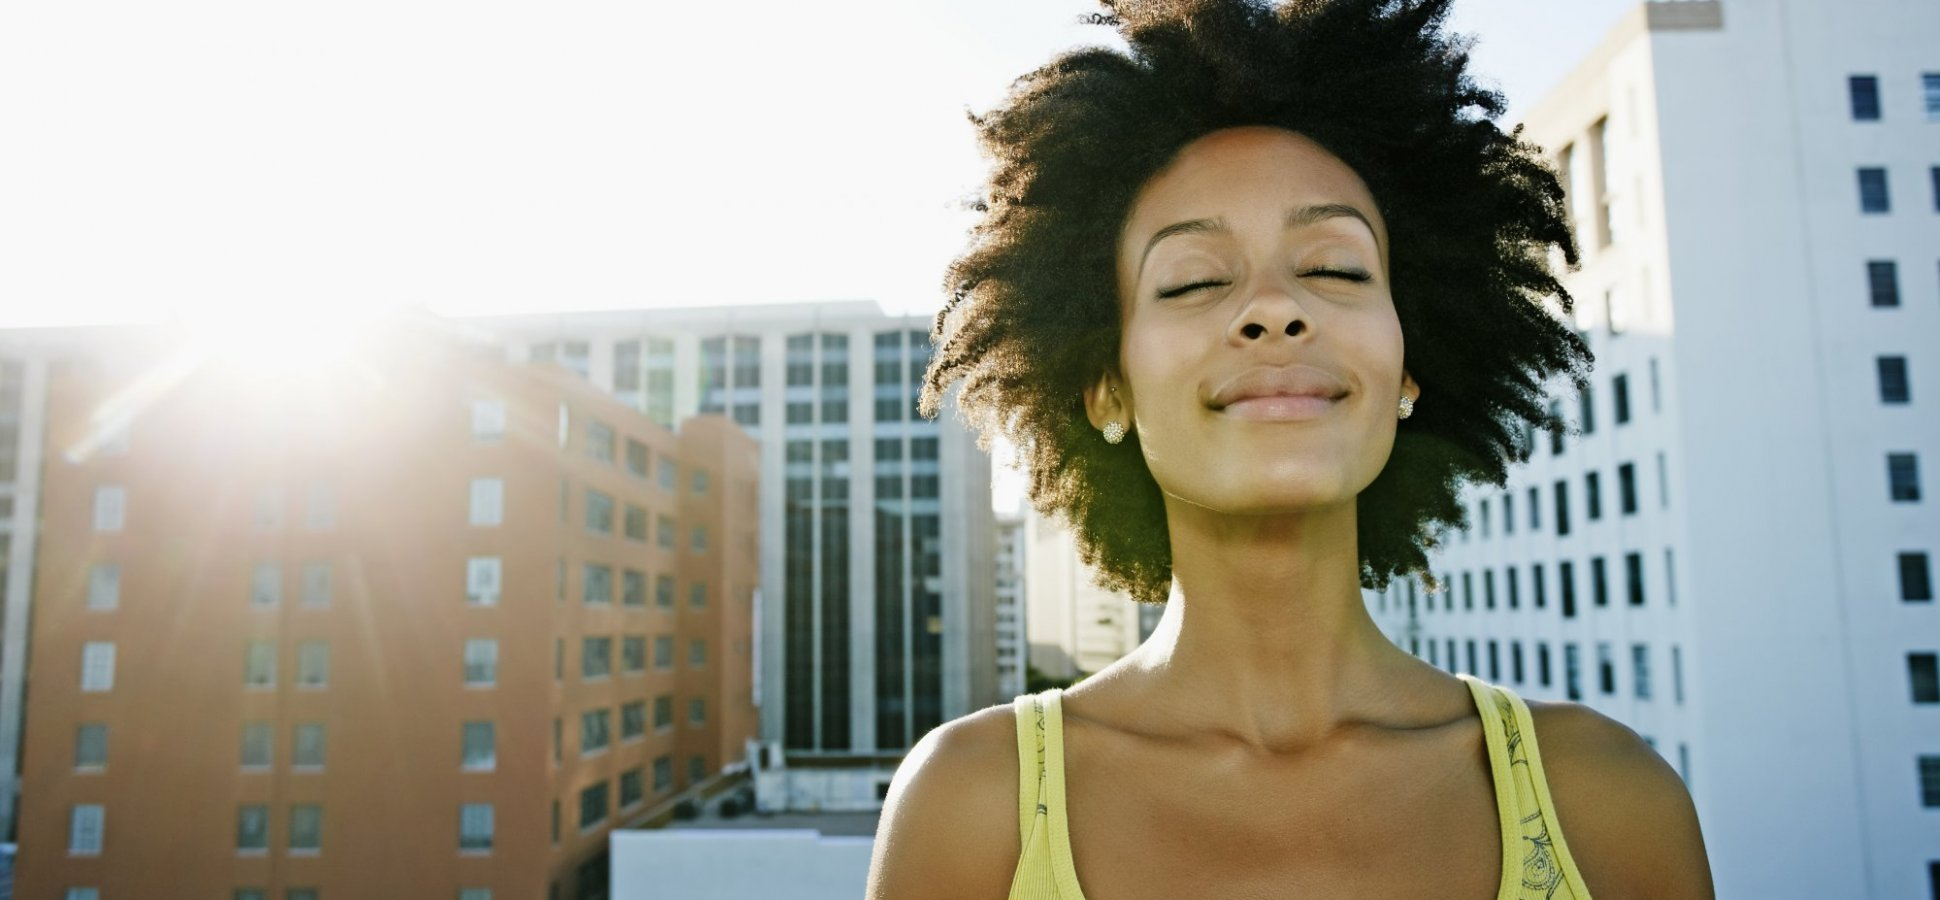 Feeling Anxious? 7 Natural Remedies for Anxiety That Work Really Fast